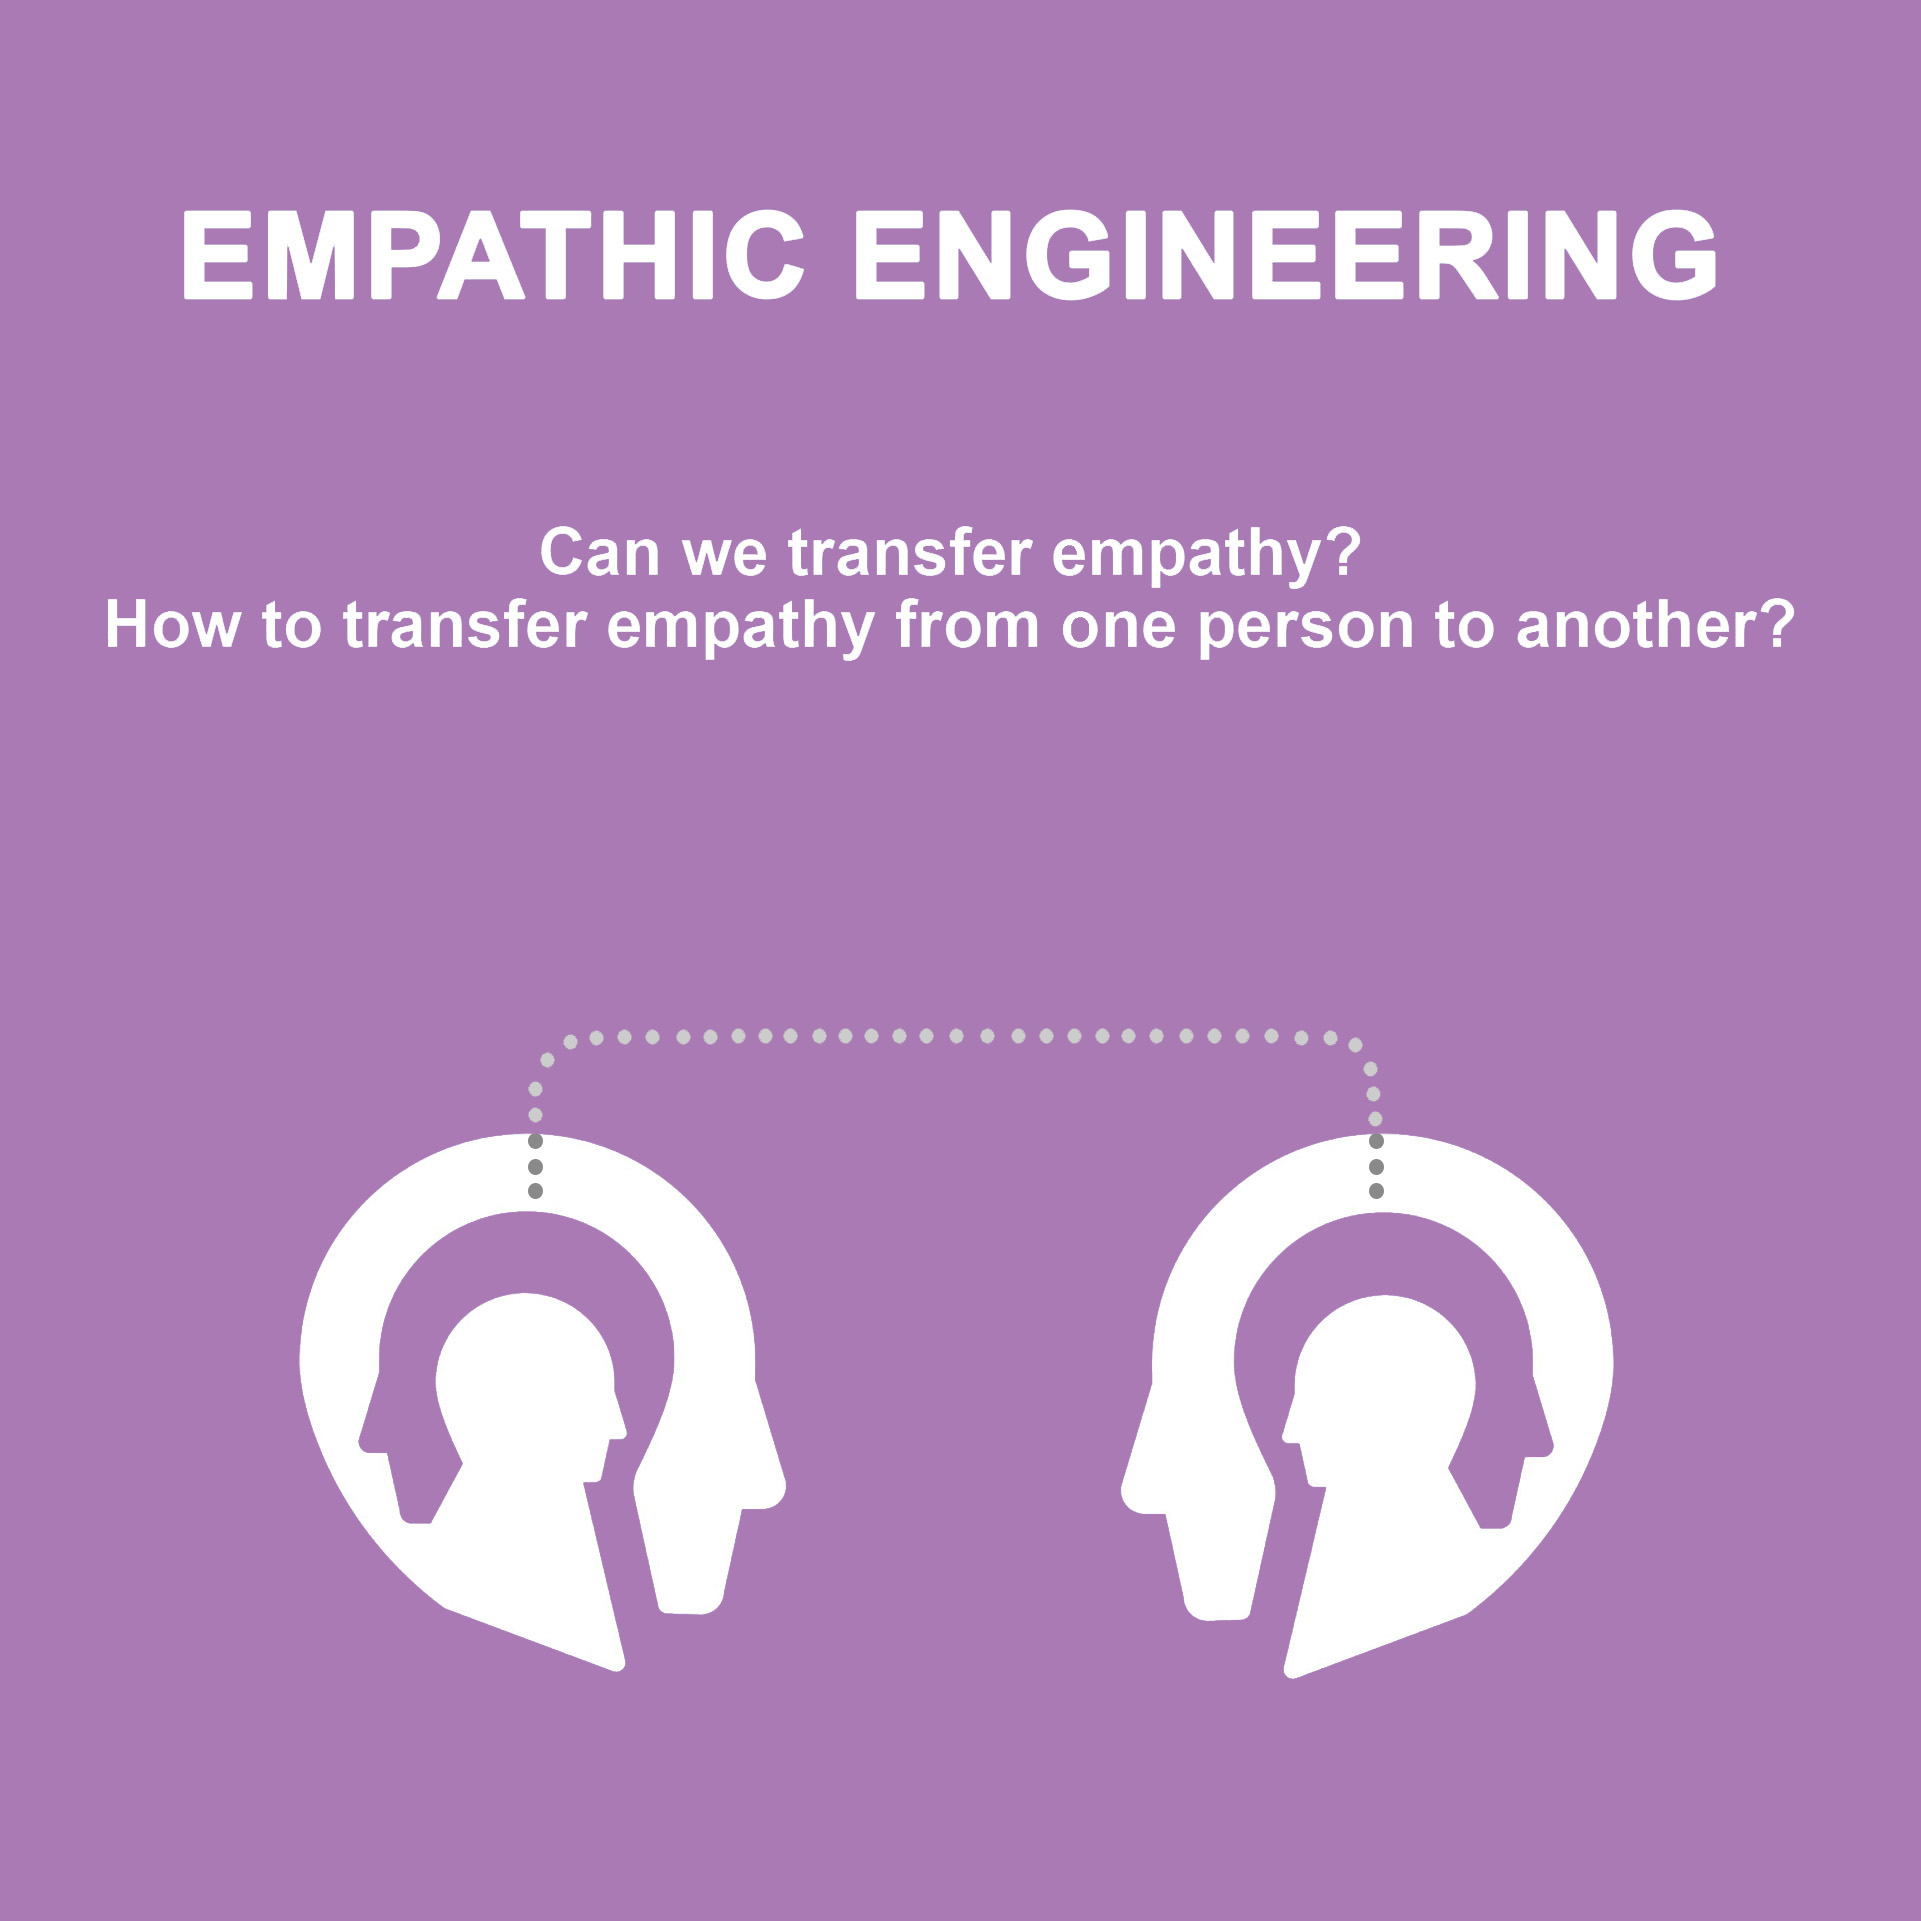 Emapthic-Engineering-Transfer-purple.jpg